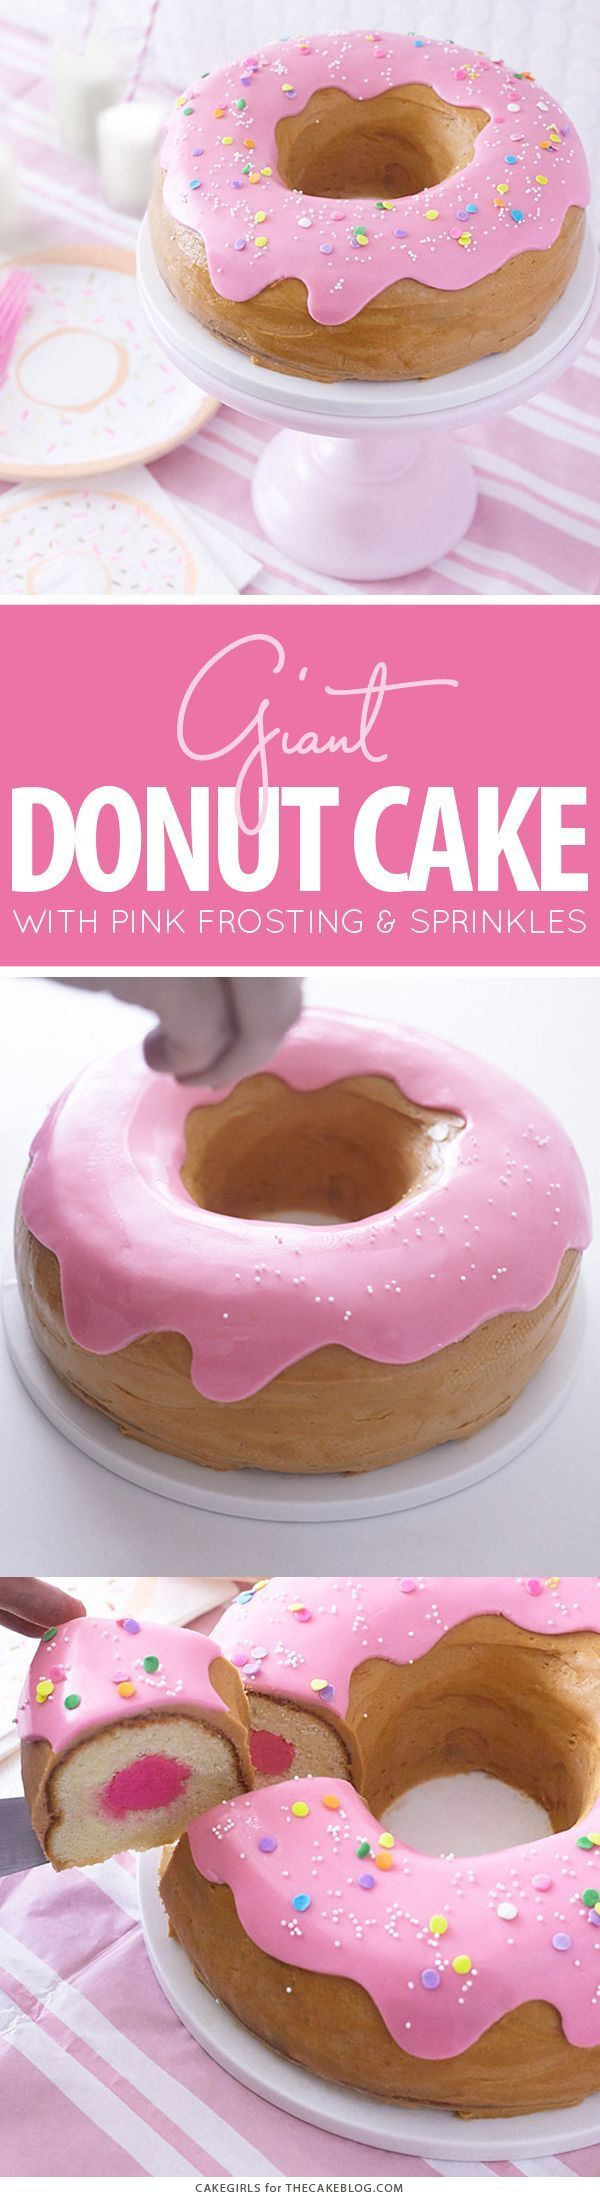 Giant Donut Cake! Learn how to make this adorable, sprinkle-coated, giant donut cake with a simple step-by-step tutorial   by Cakegirls for TheCakeBlog.com